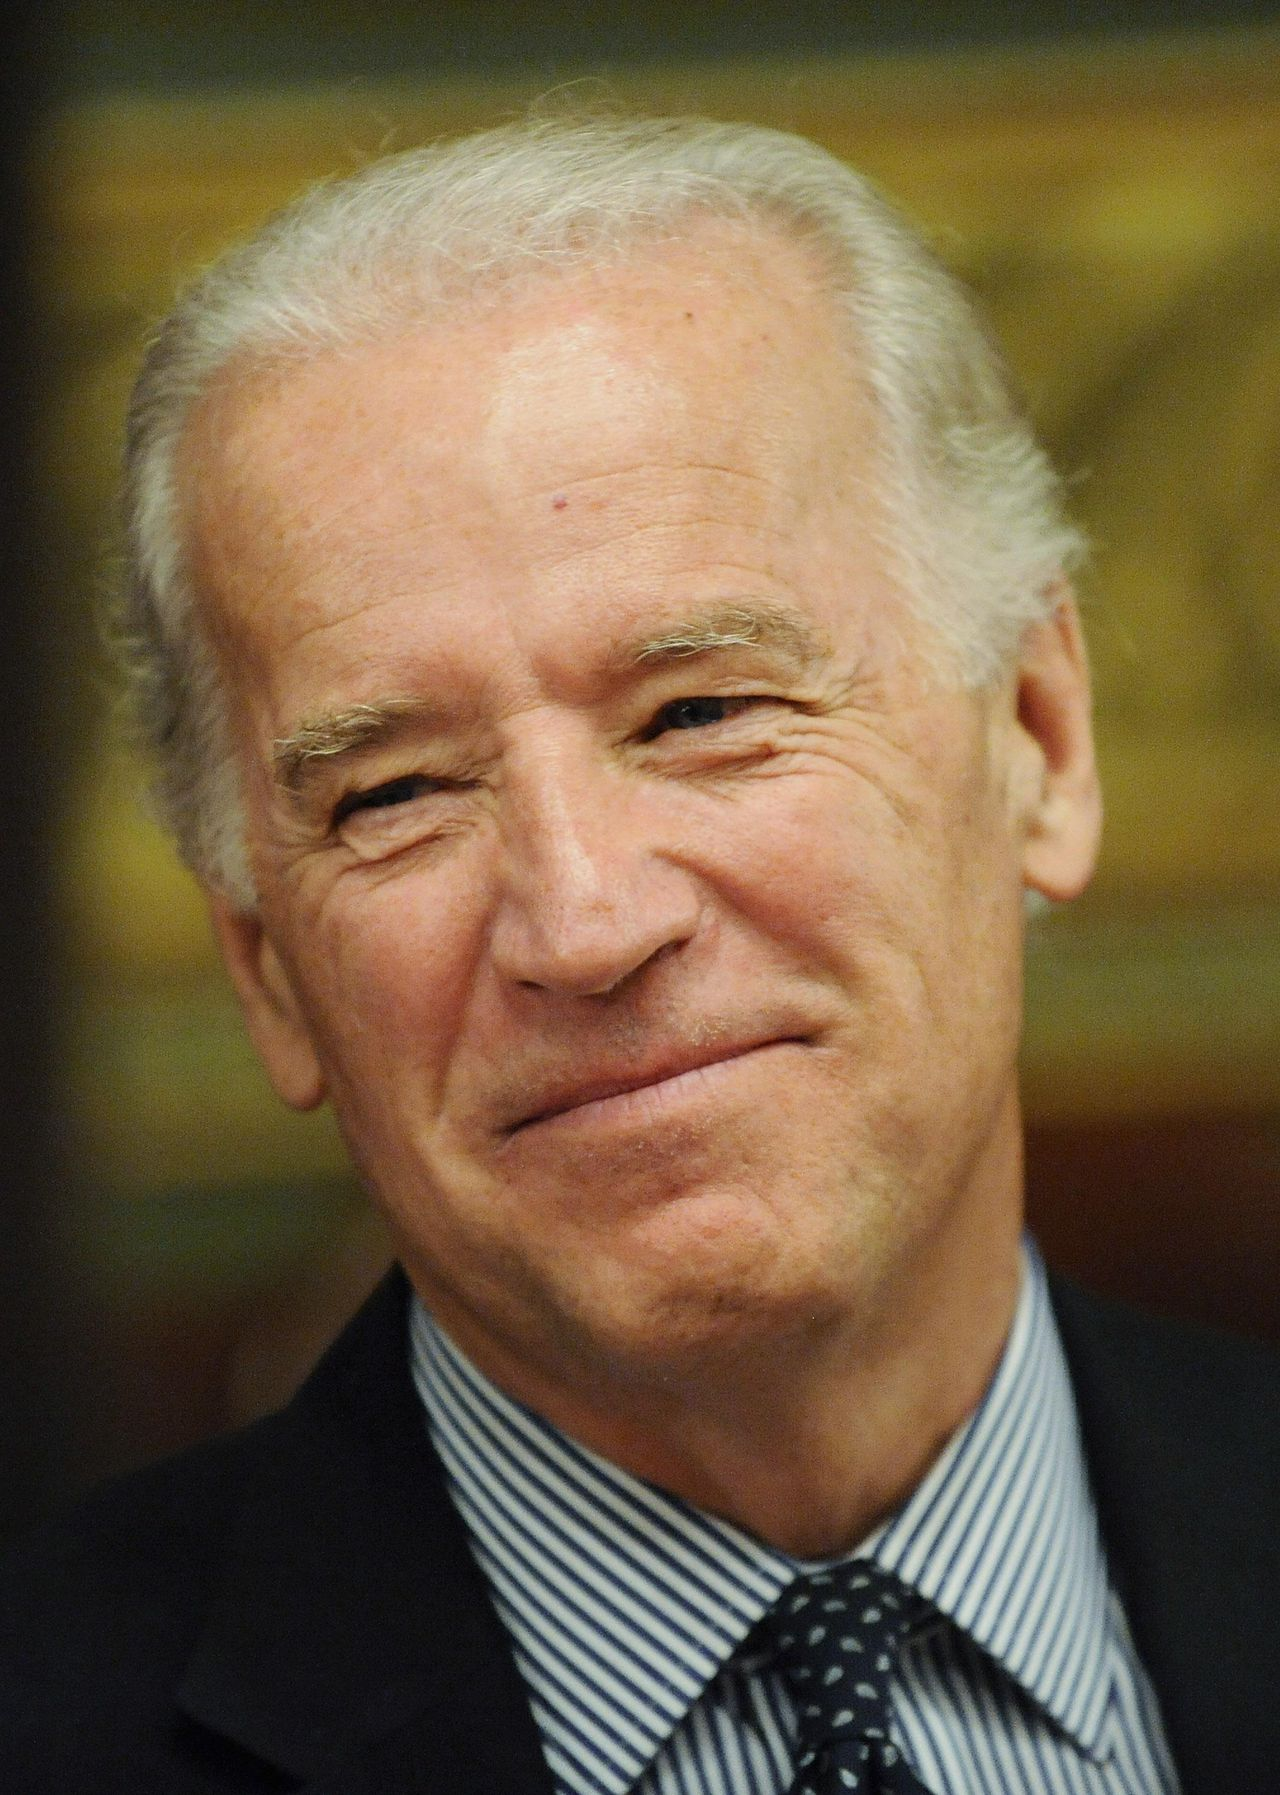 US Vice President Joe Biden smiles during a meeting of the Economic Recovery Implementation Cabinet in his ceremonial office in the Eisenhower Executive Office Building in Washington, May 6, 2009. REUTERS/Jonathan Ernst (UNITED STATES POLITICS BUSINESS)